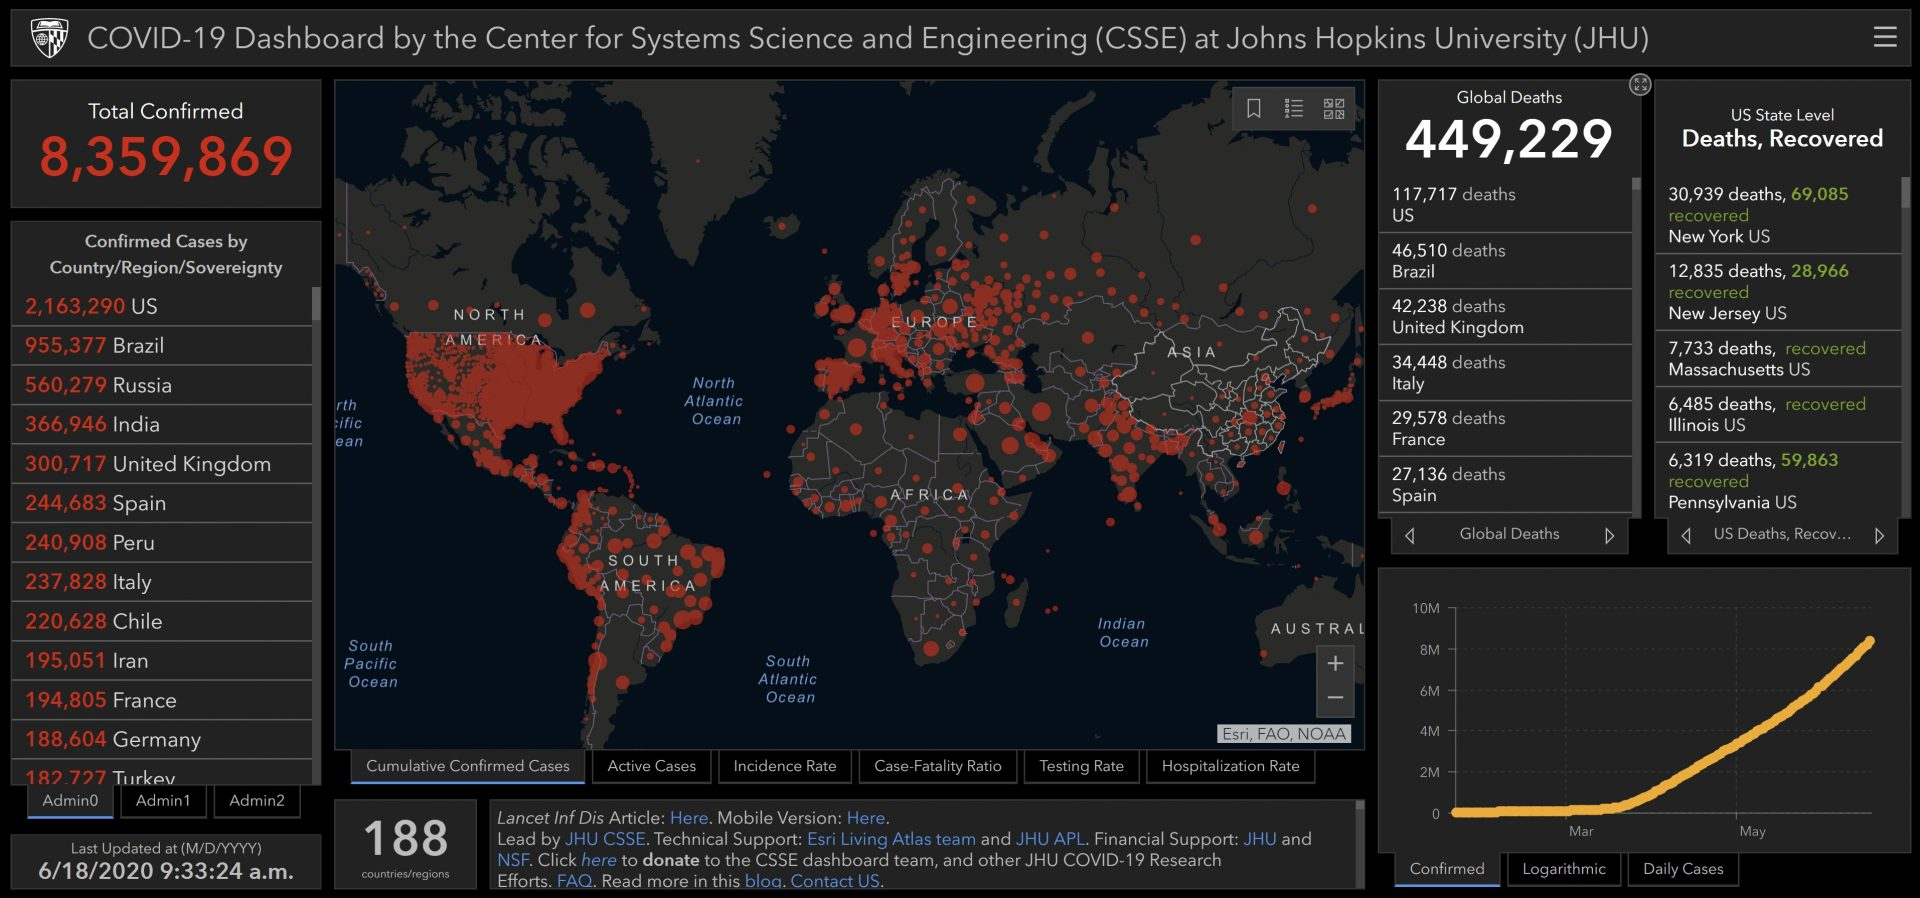 COVID-19 Dashboard by CSSE at JHU - Week 25 Update